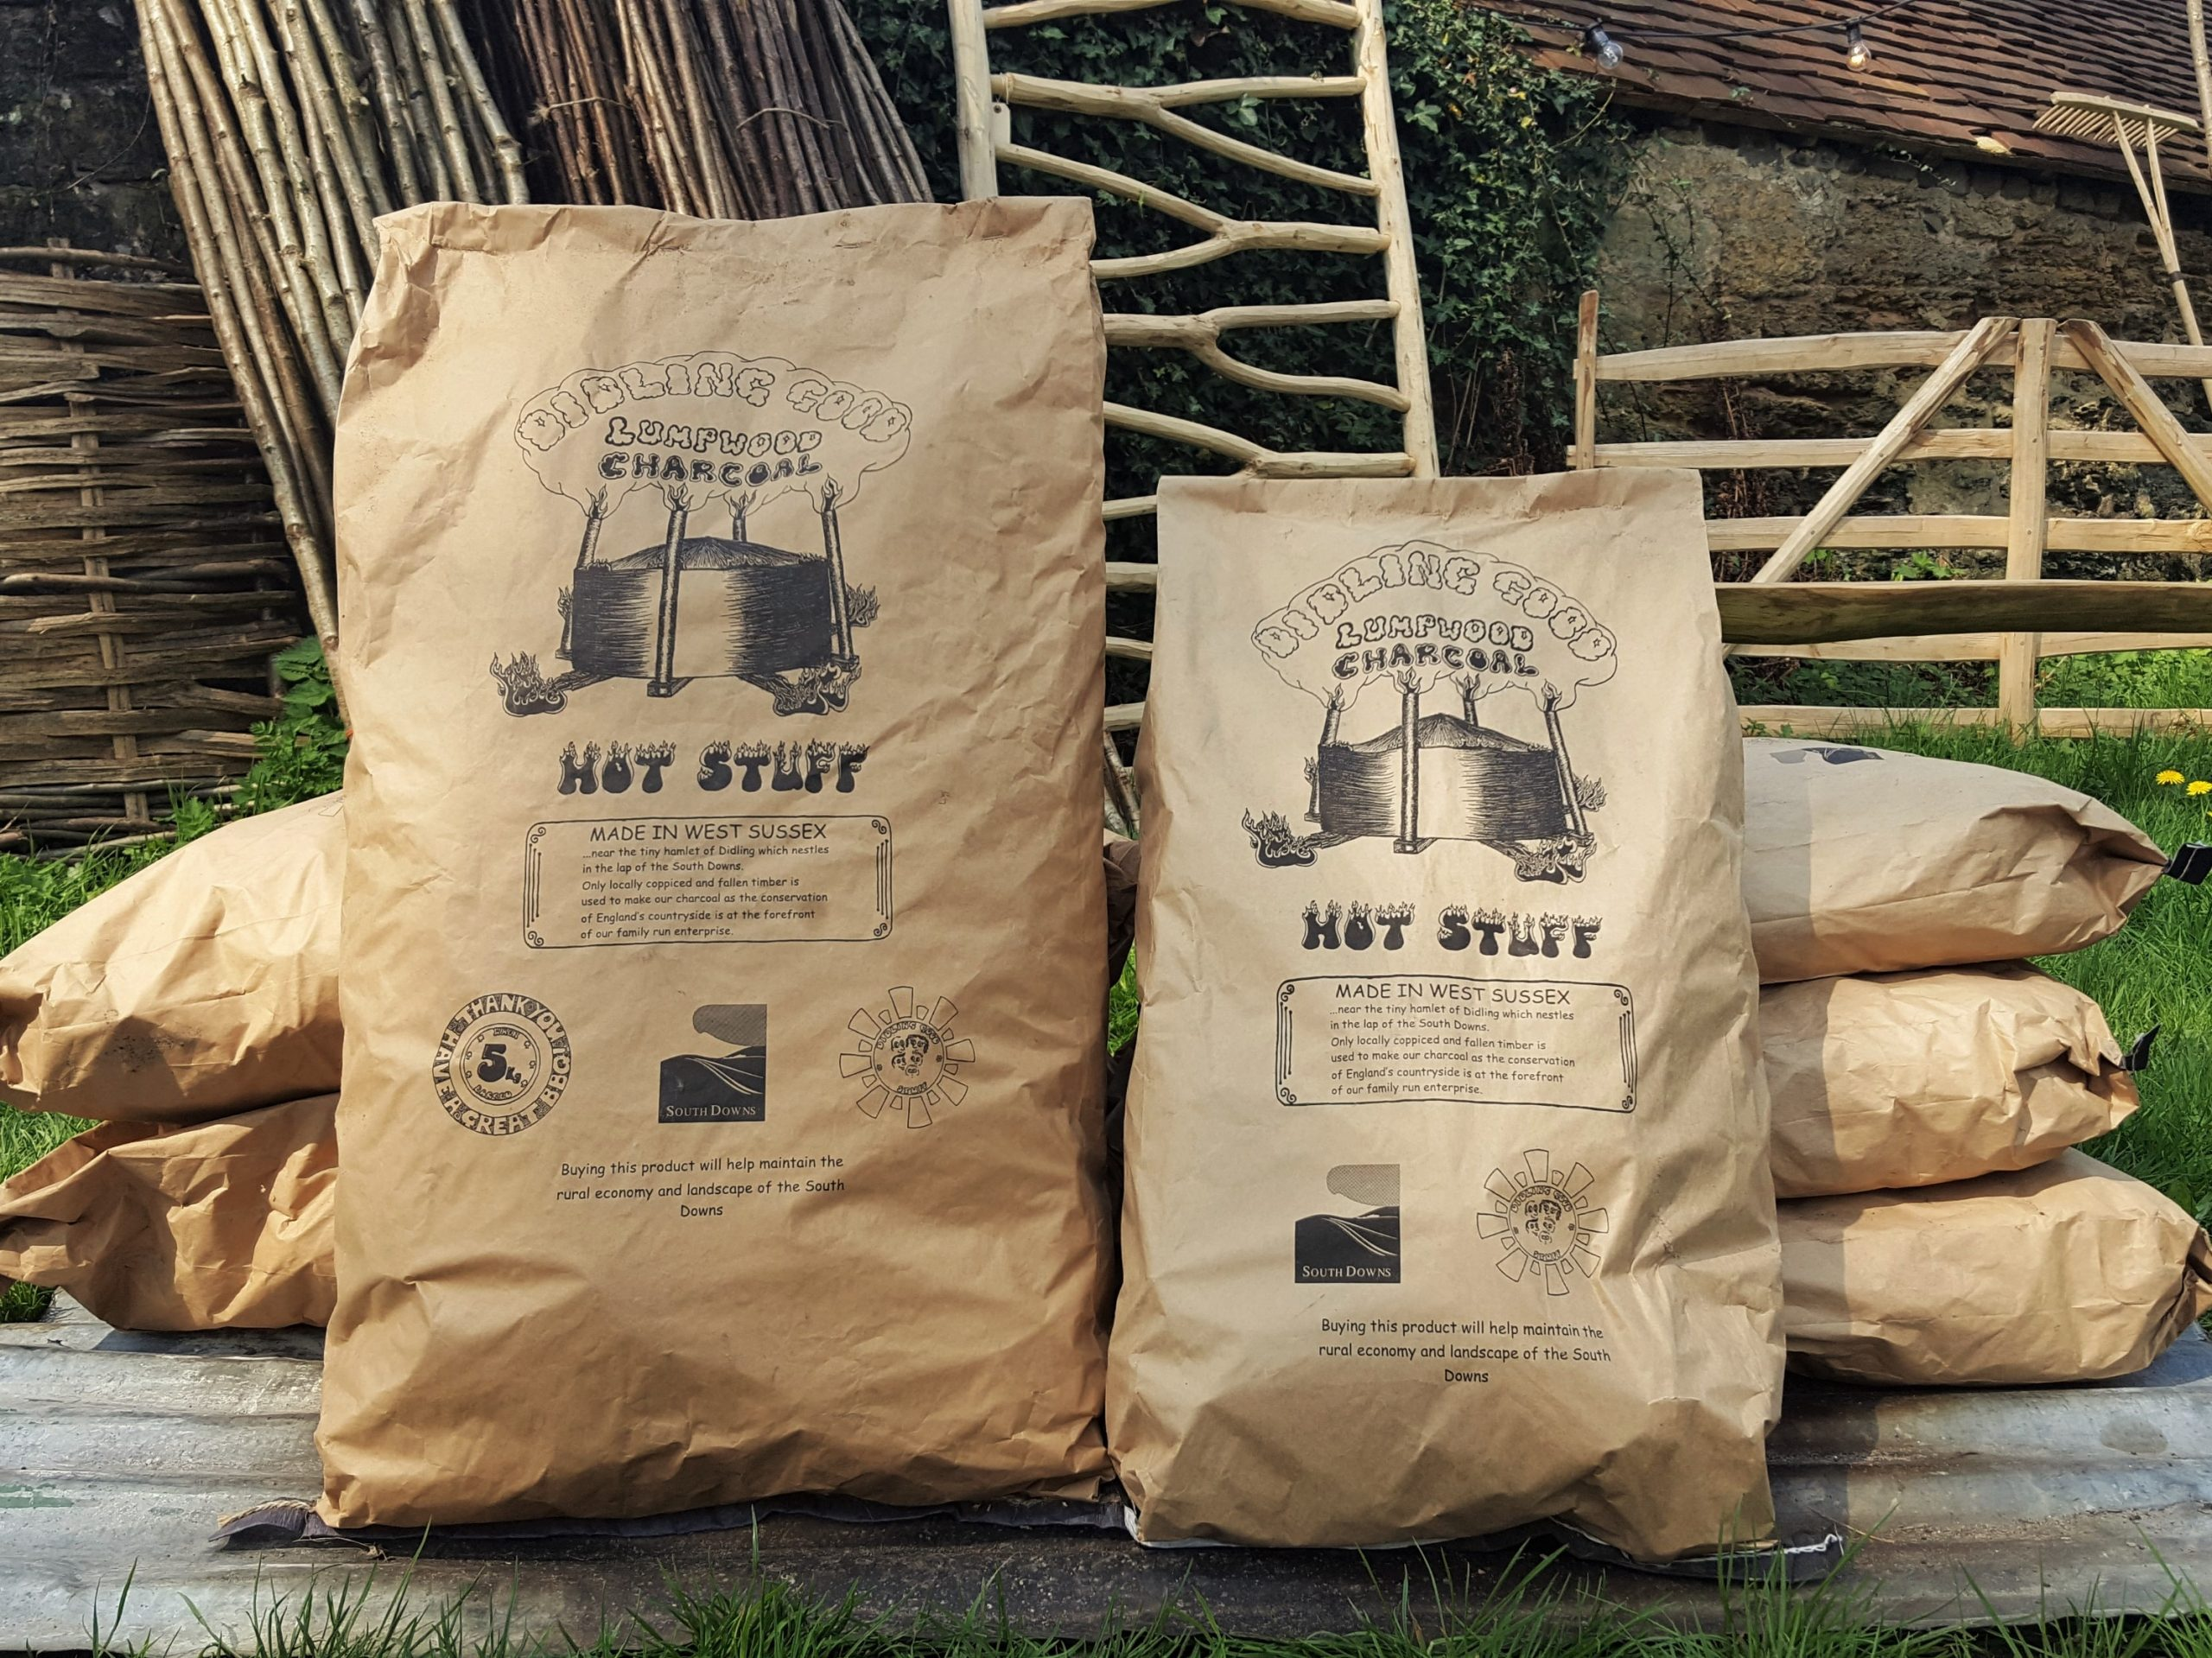 Bags of local charcoal